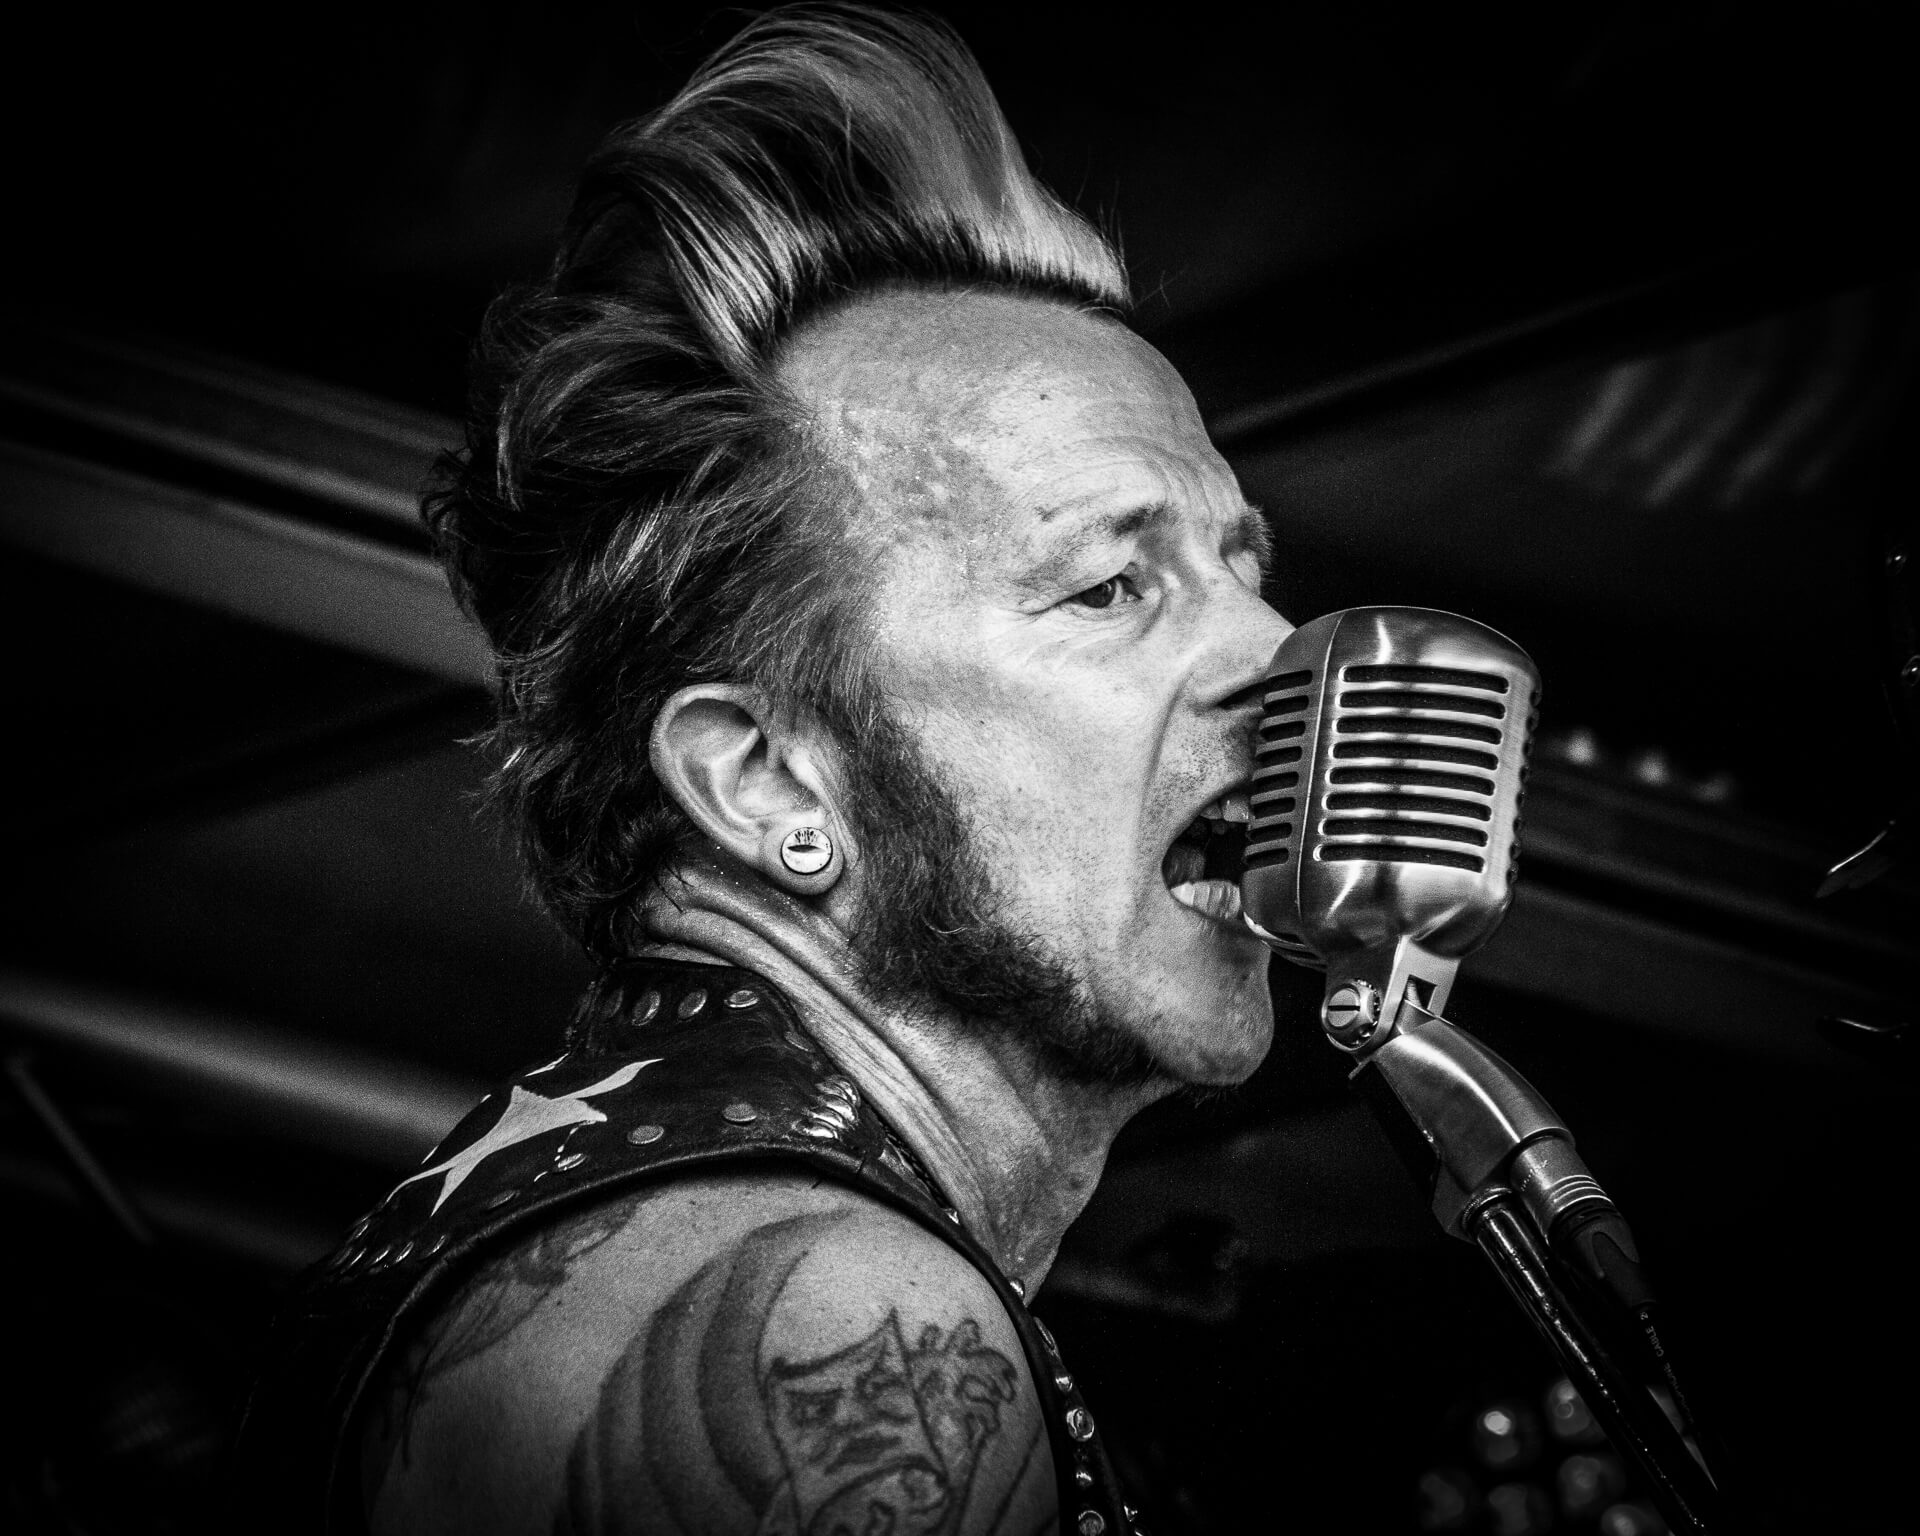 A close up Black & White photo of Gaz Le Bass of The Delray Rockets singing into a Super Sure 55 (a 1950's style) microphone at The Drunken Monkey Festival 2017